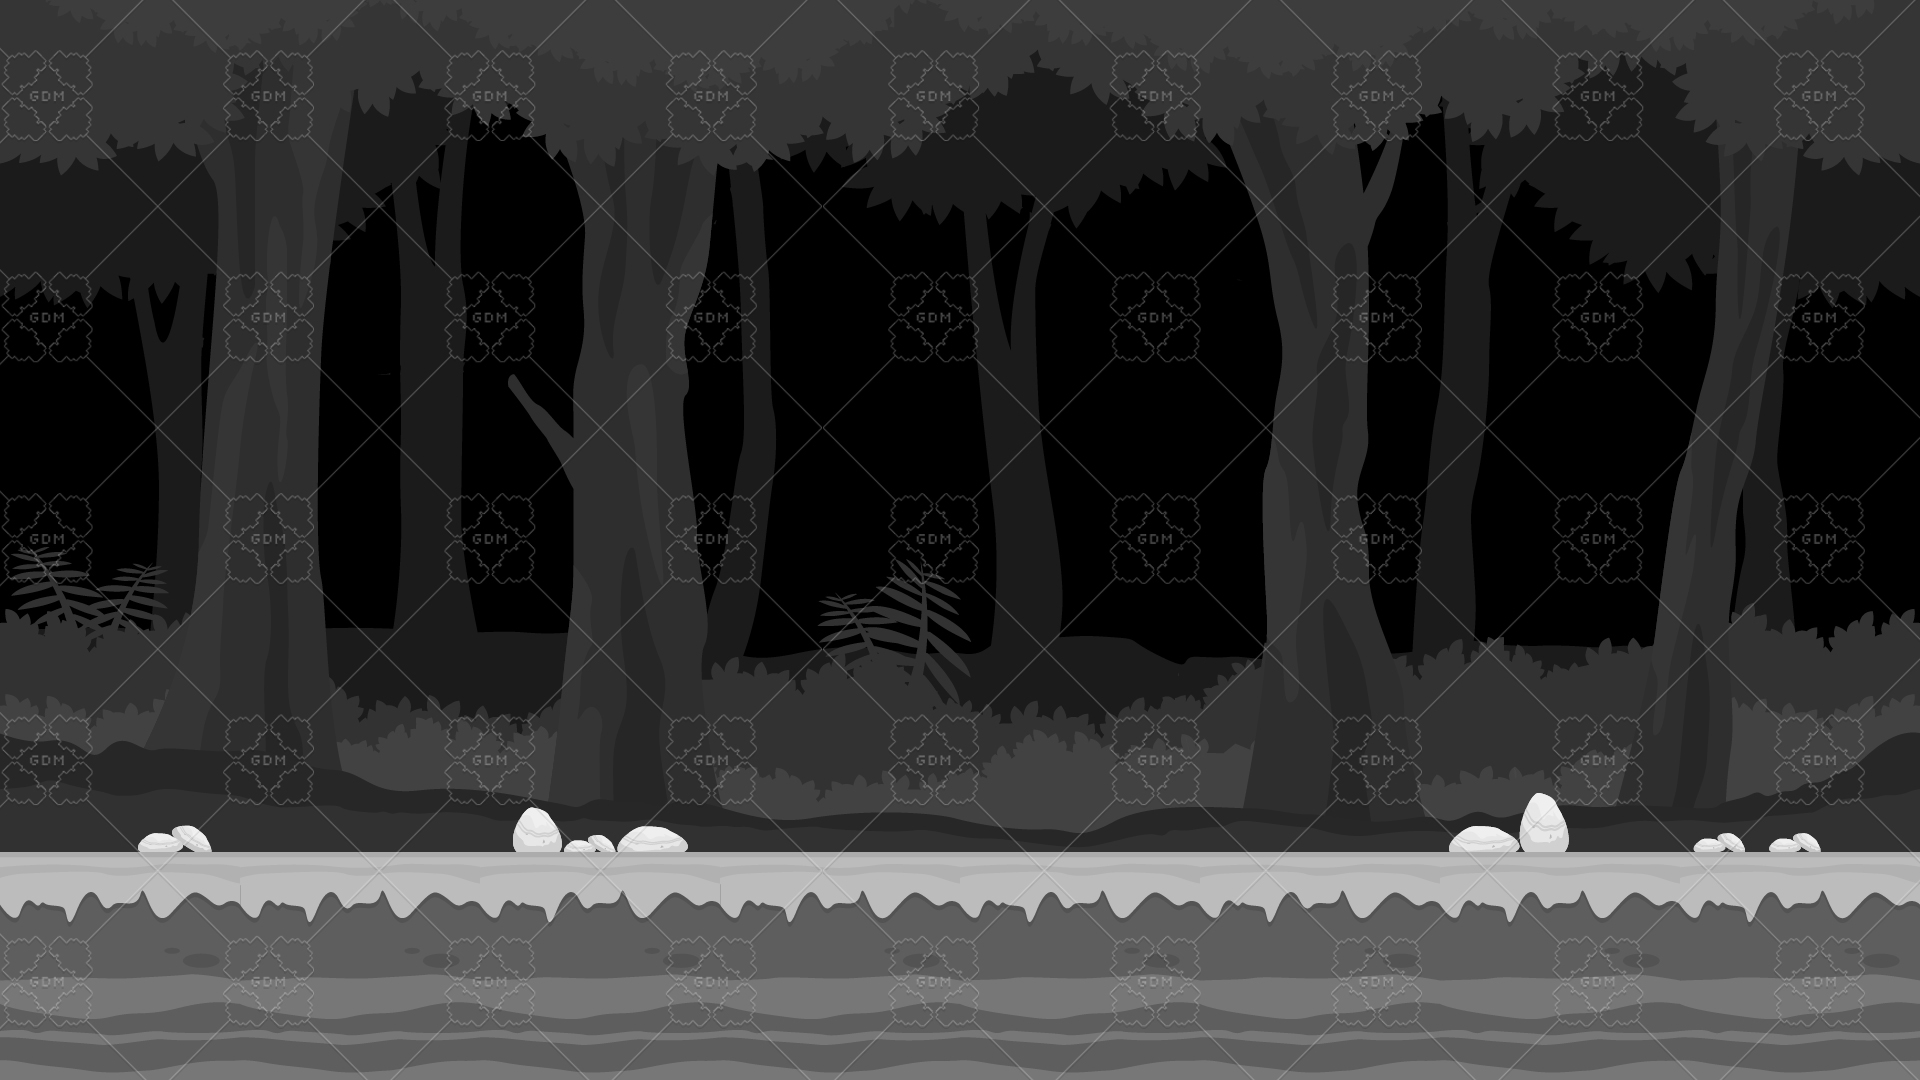 2d Dark Forest Cartoony Parallax Nature Background Gamedev Market 9,000+ vectors, stock photos & psd files. 2d dark forest cartoony parallax nature background